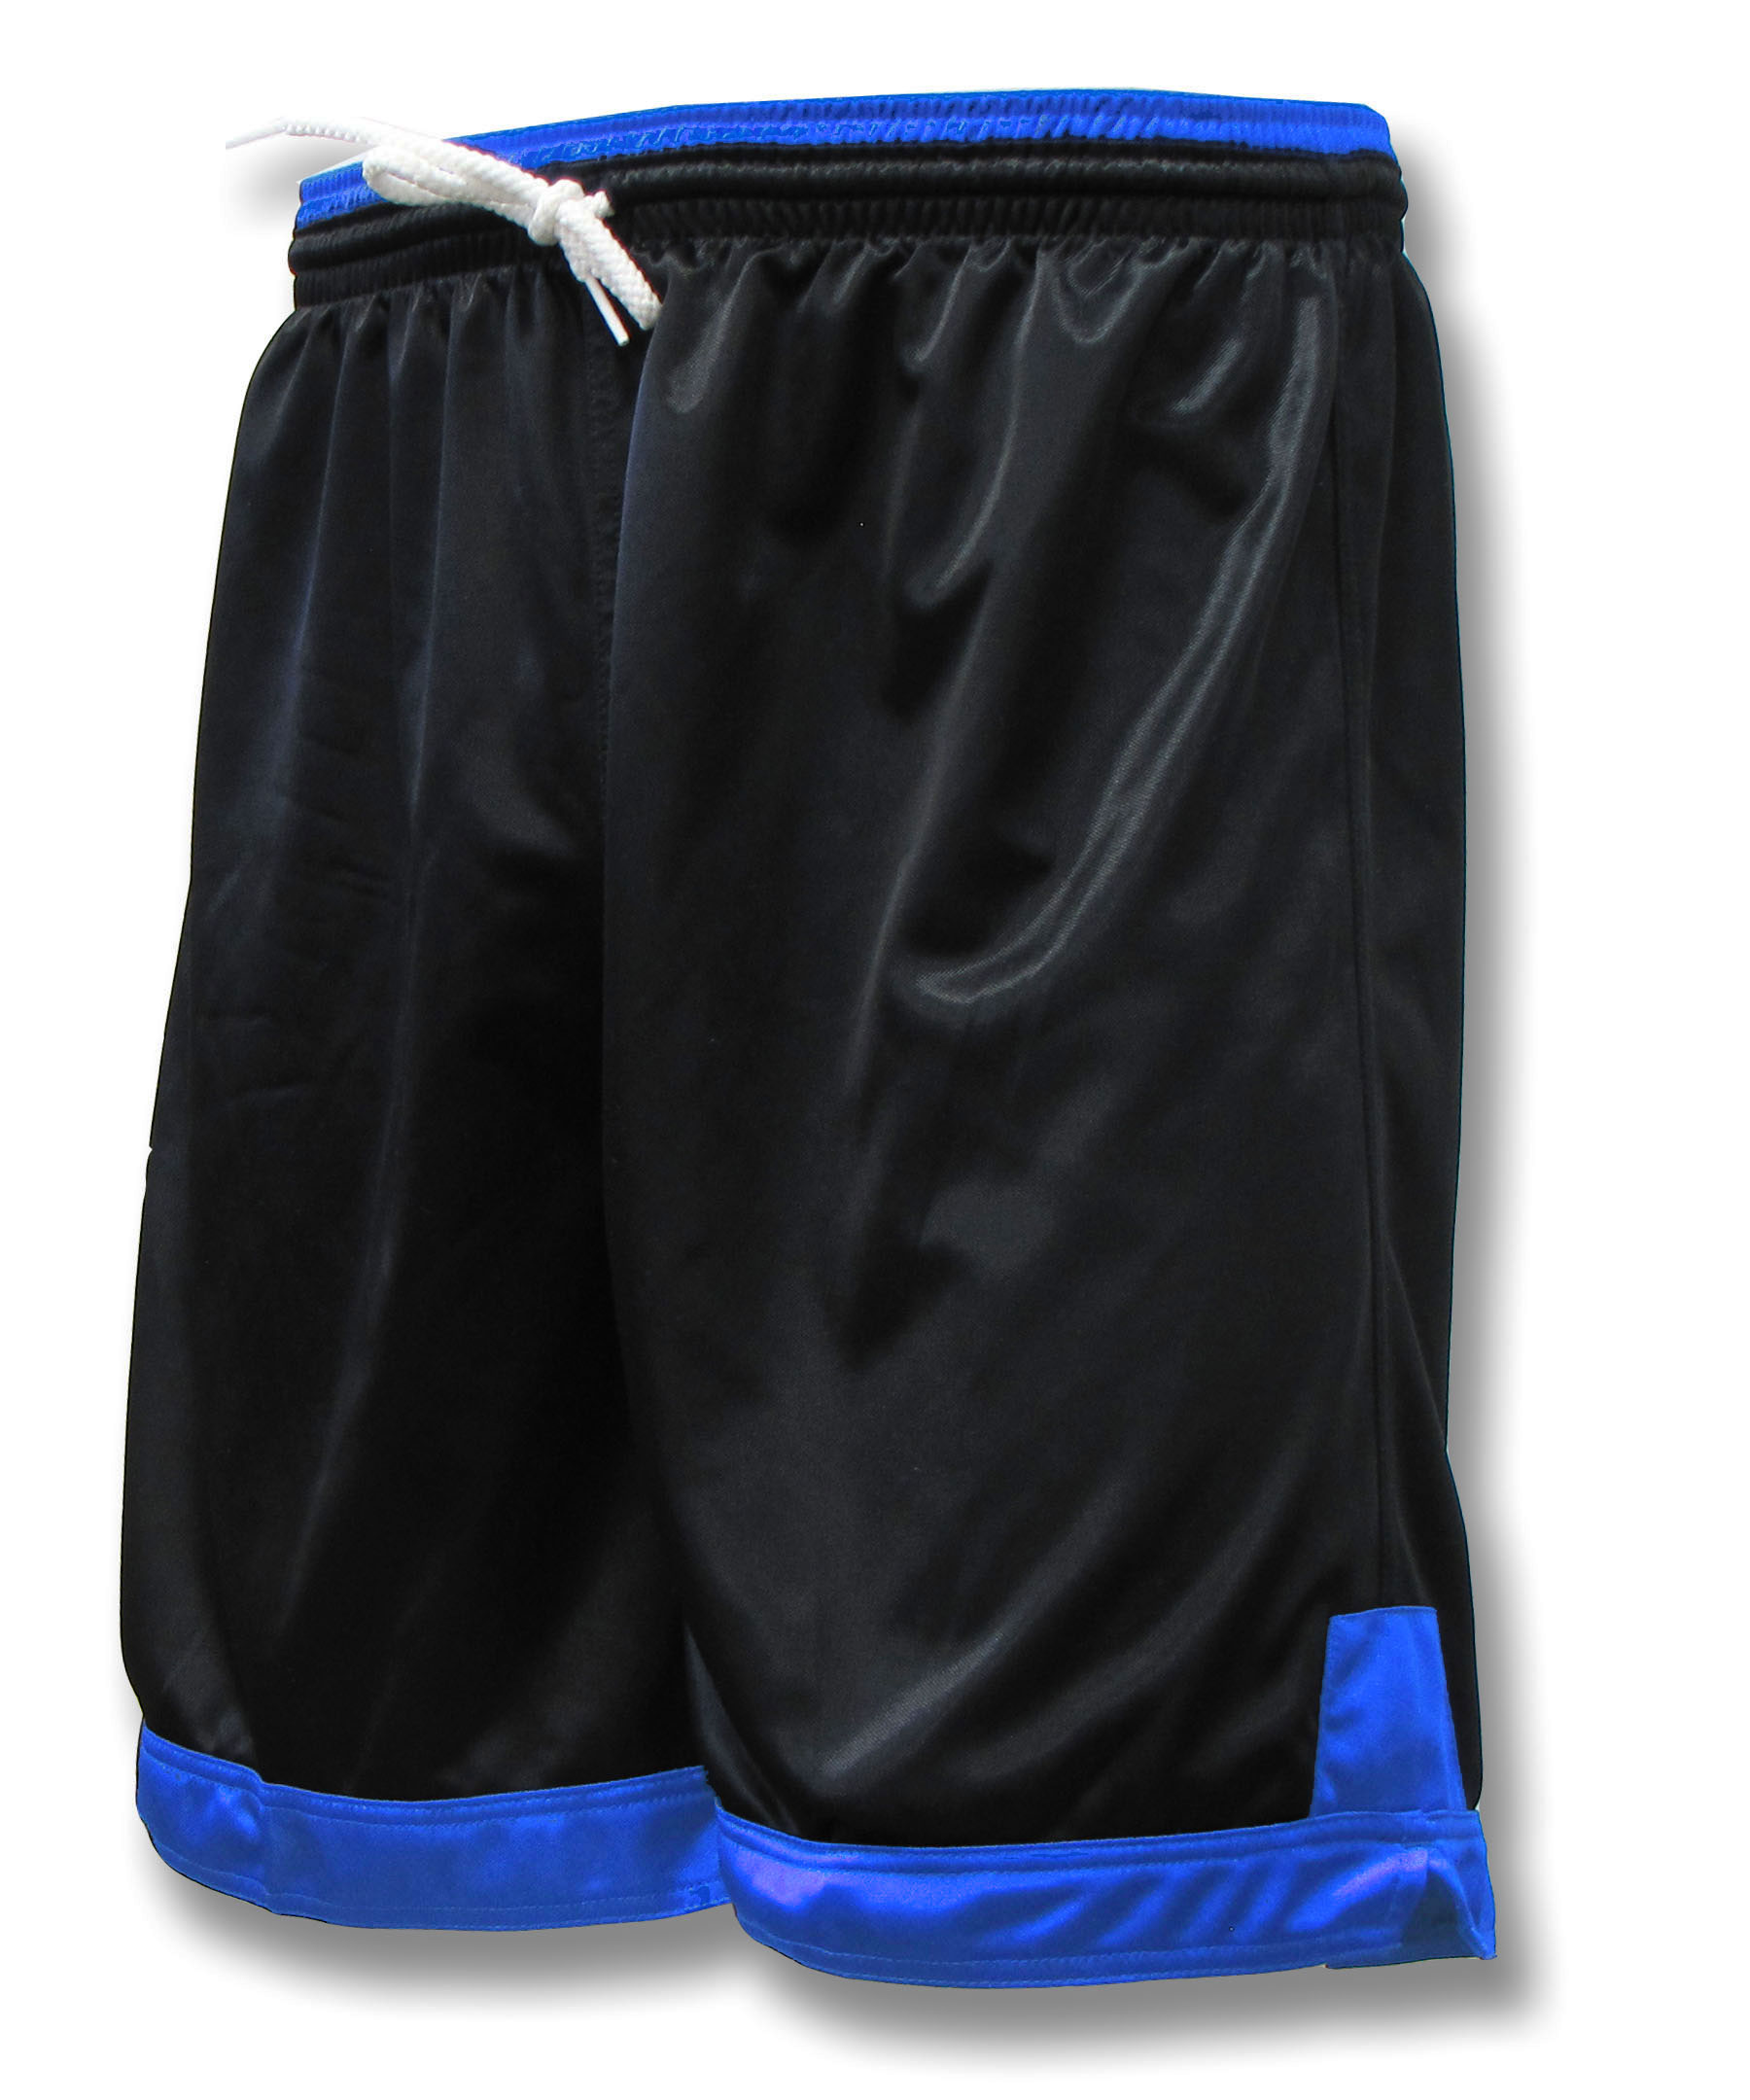 Winchester soccer shorts in black/royal by Code Four Atheltics